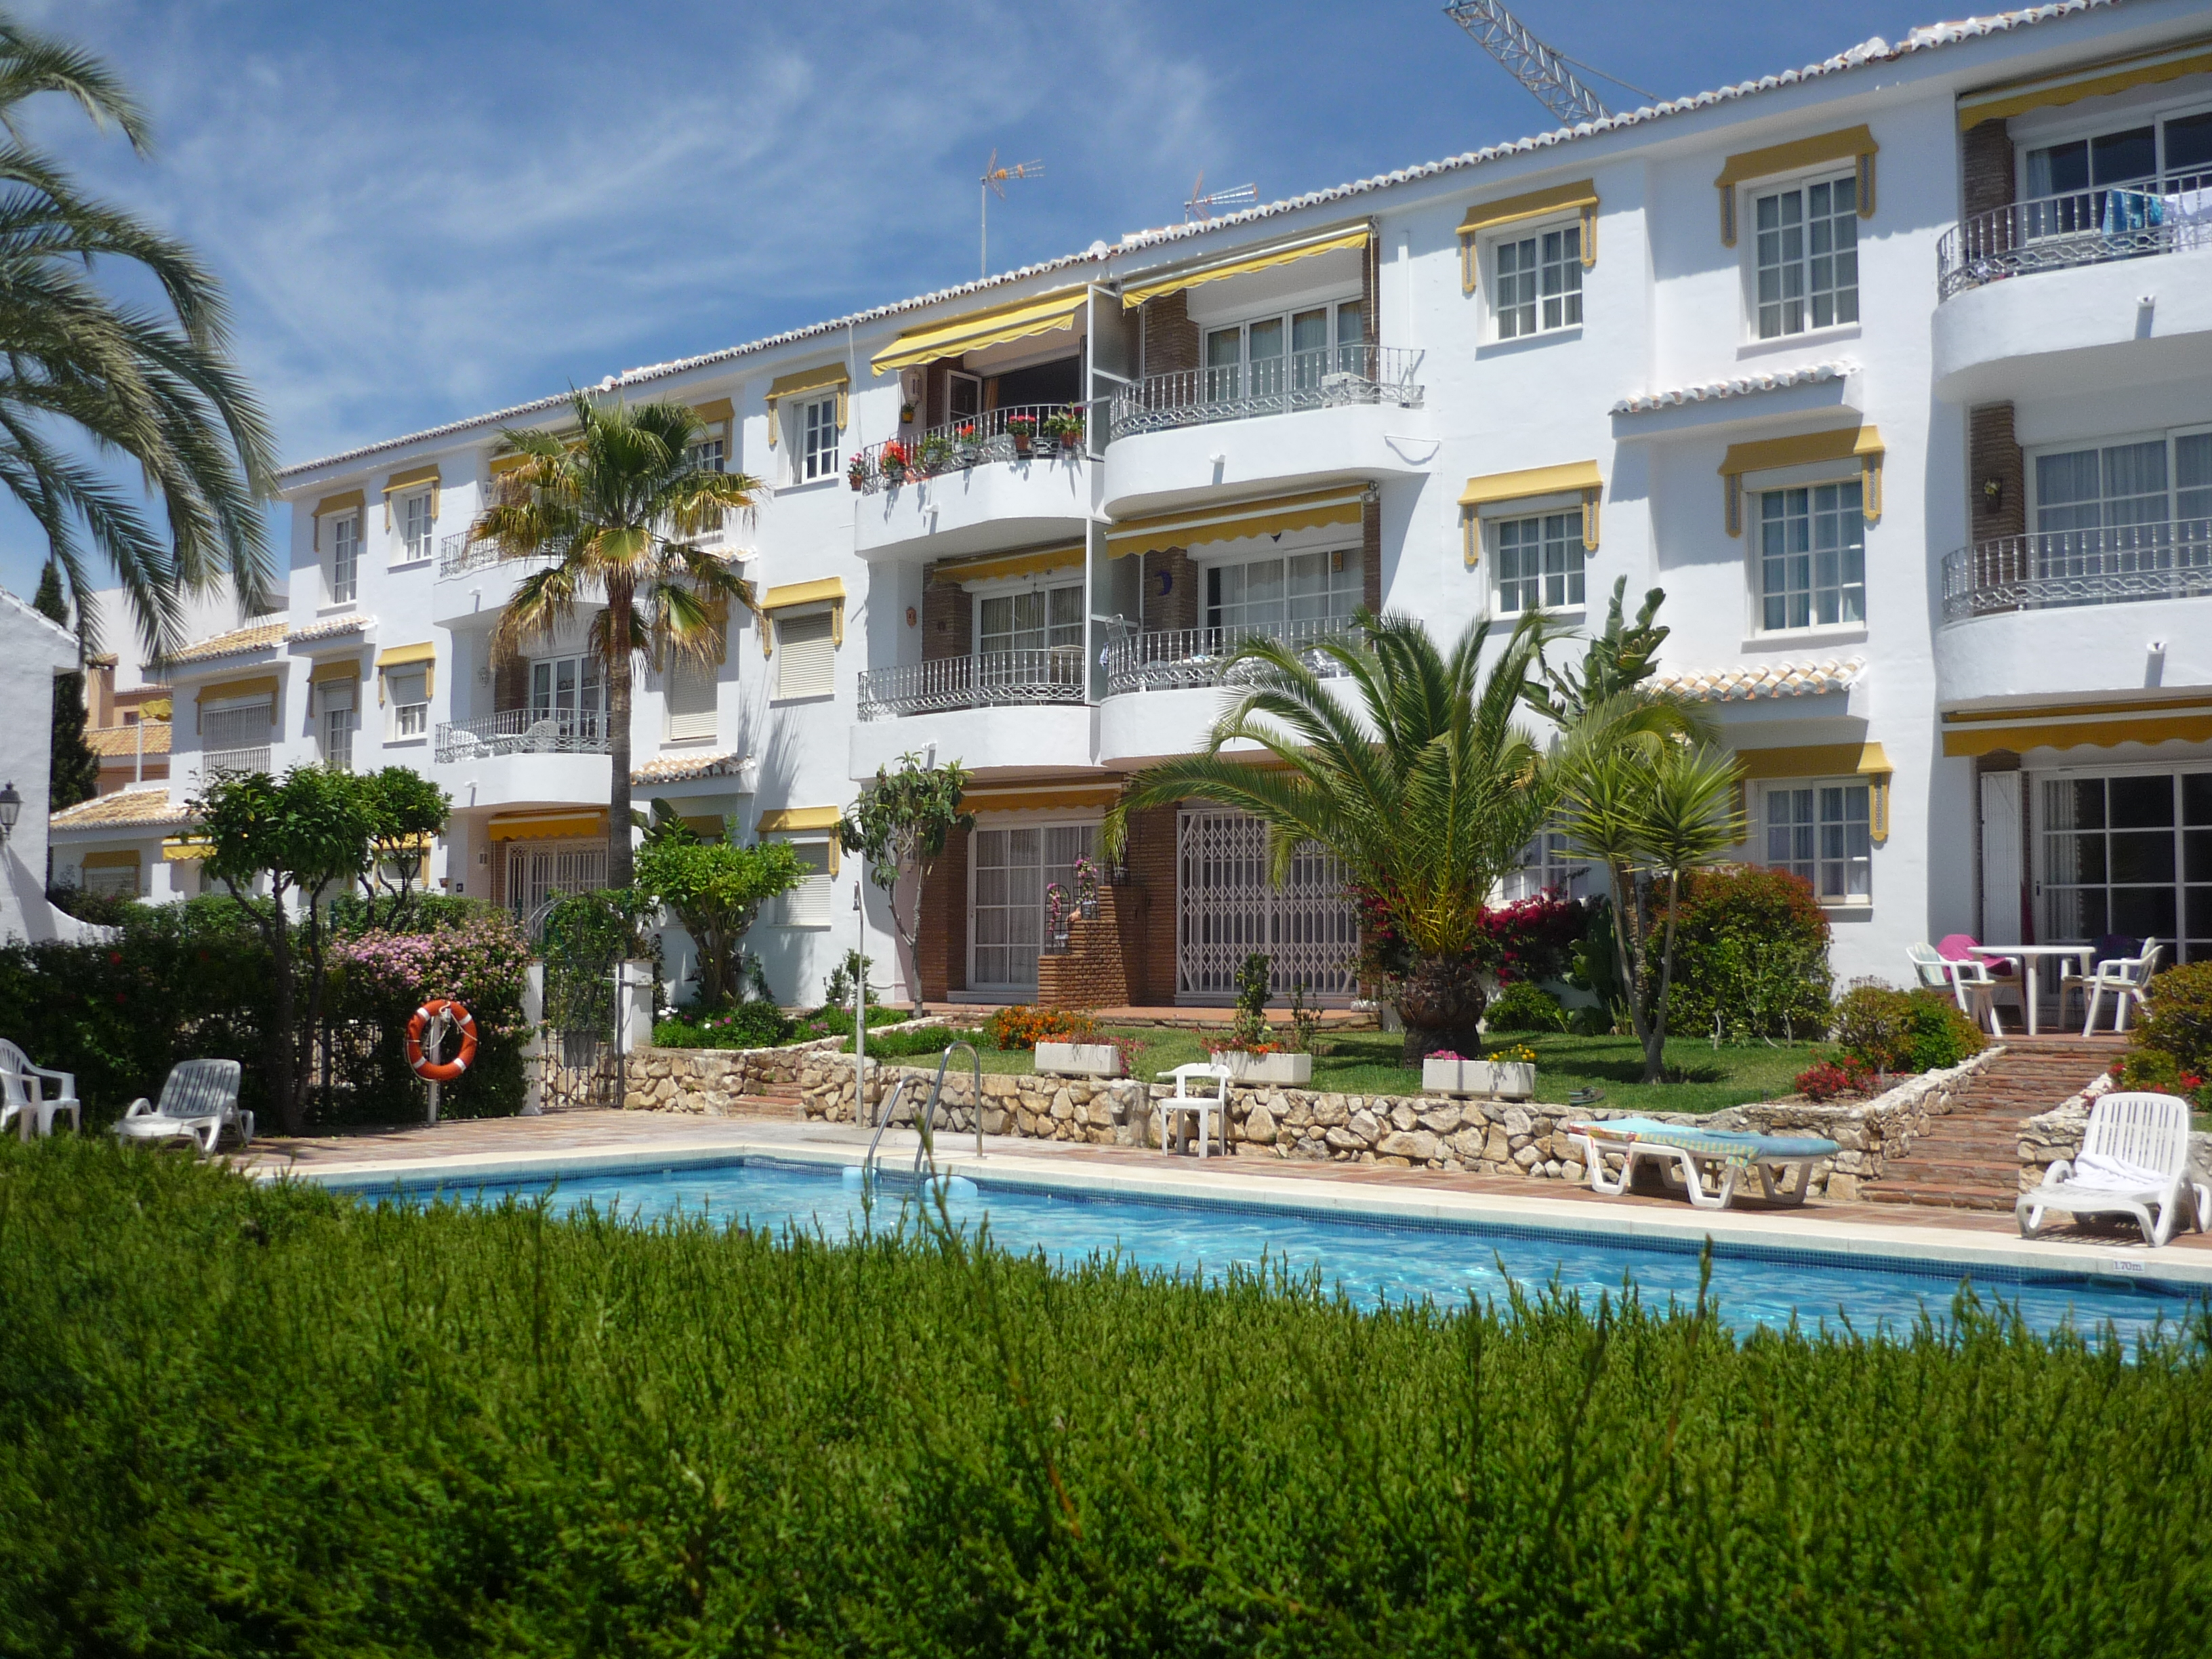 MP 3-2 Mijas Playa Club, Top Floor, 2 Bedroom Apartment